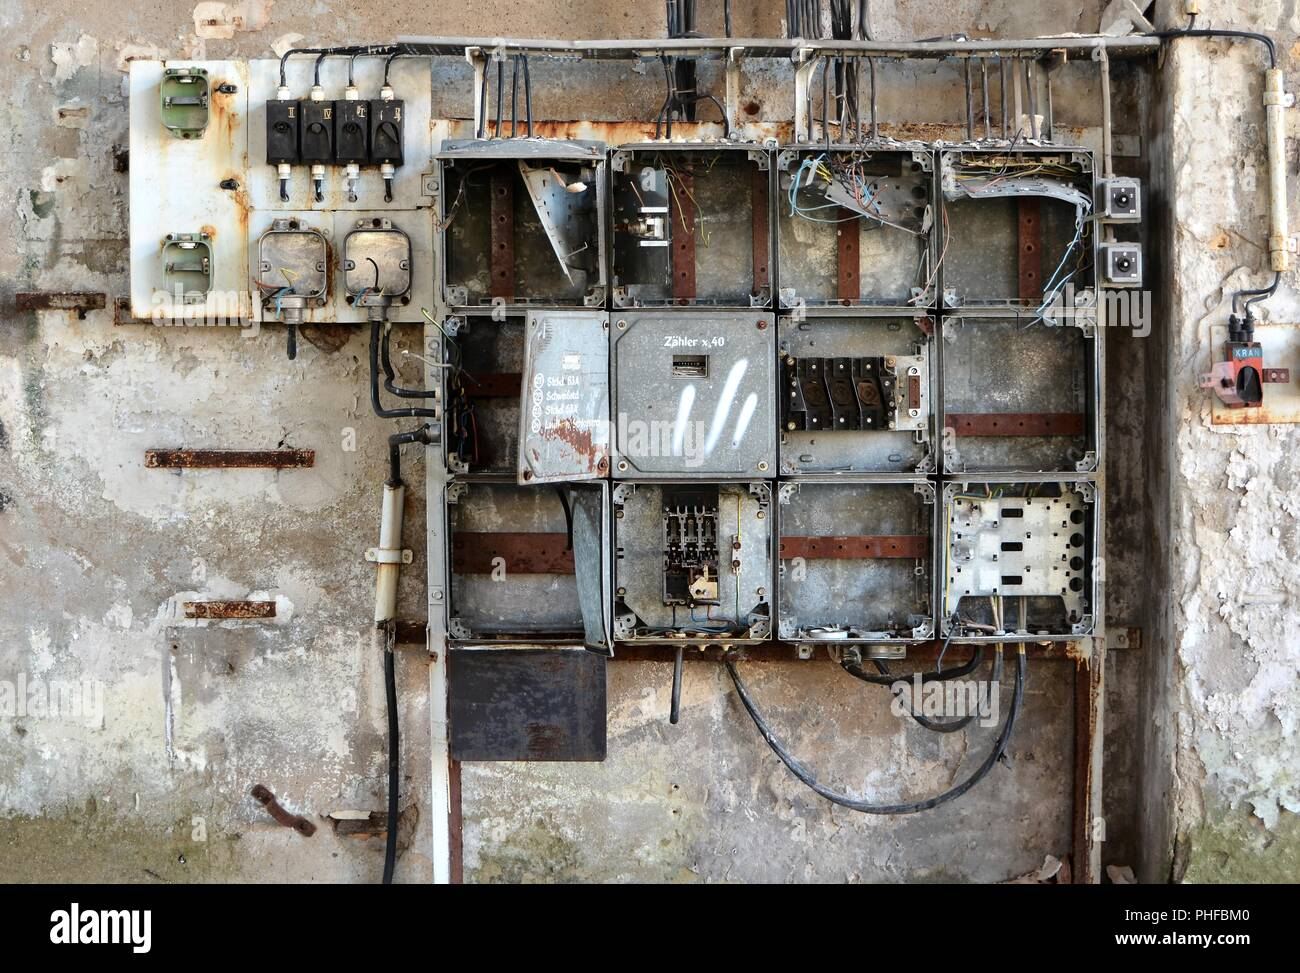 Fuse box on the site of an abandoned factory in Magdeburg